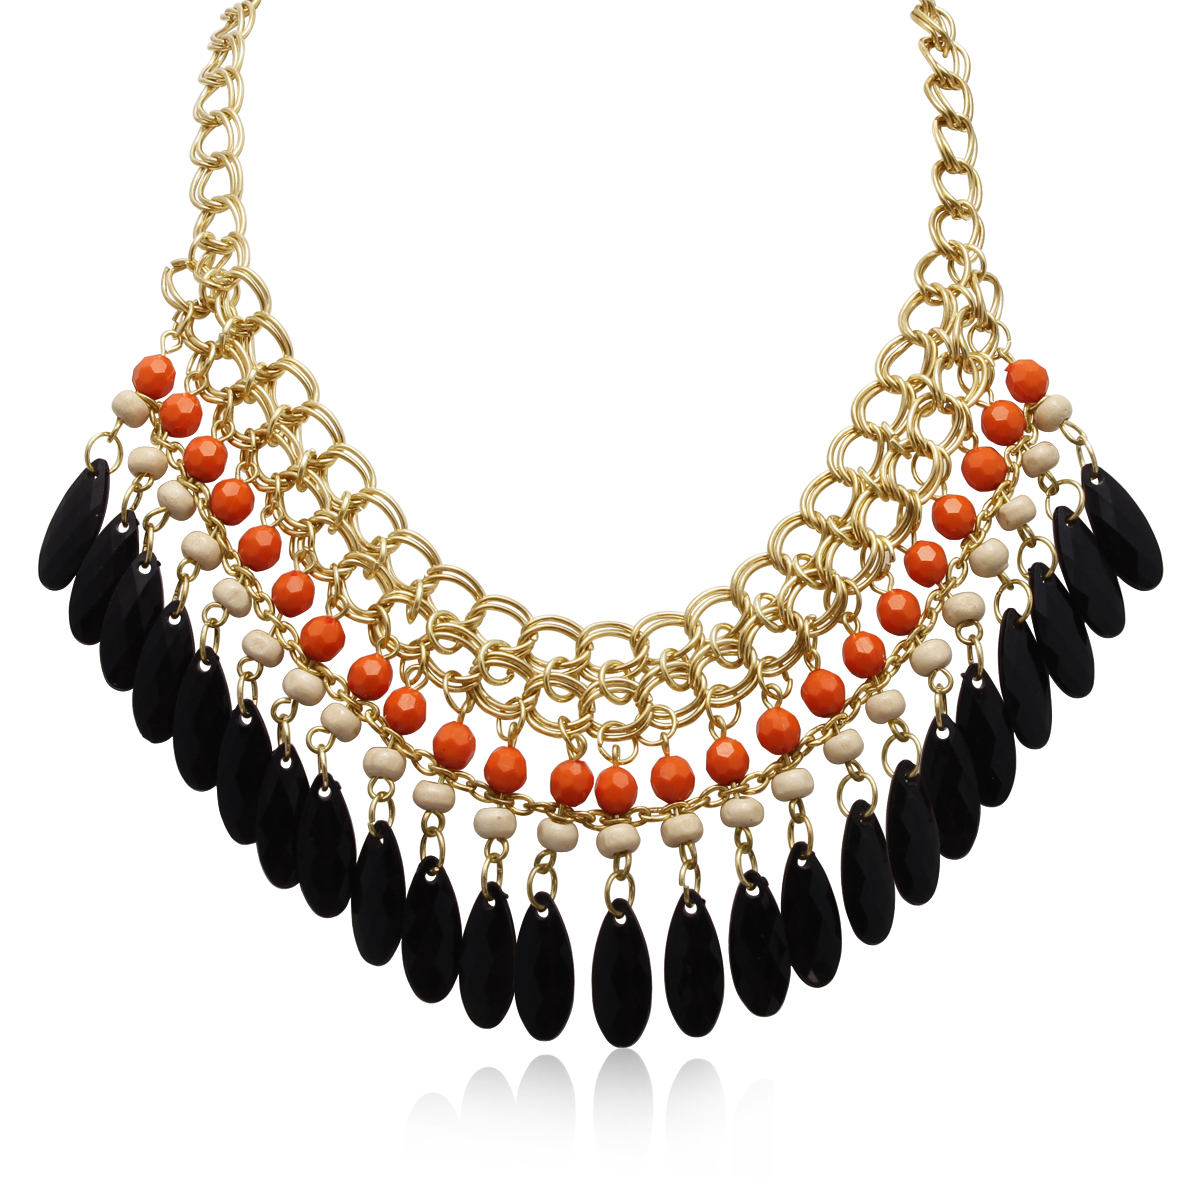 Mandarin Orange and Black Onyx Crystal Bib Necklace In Gold Overlay, 16 Inches